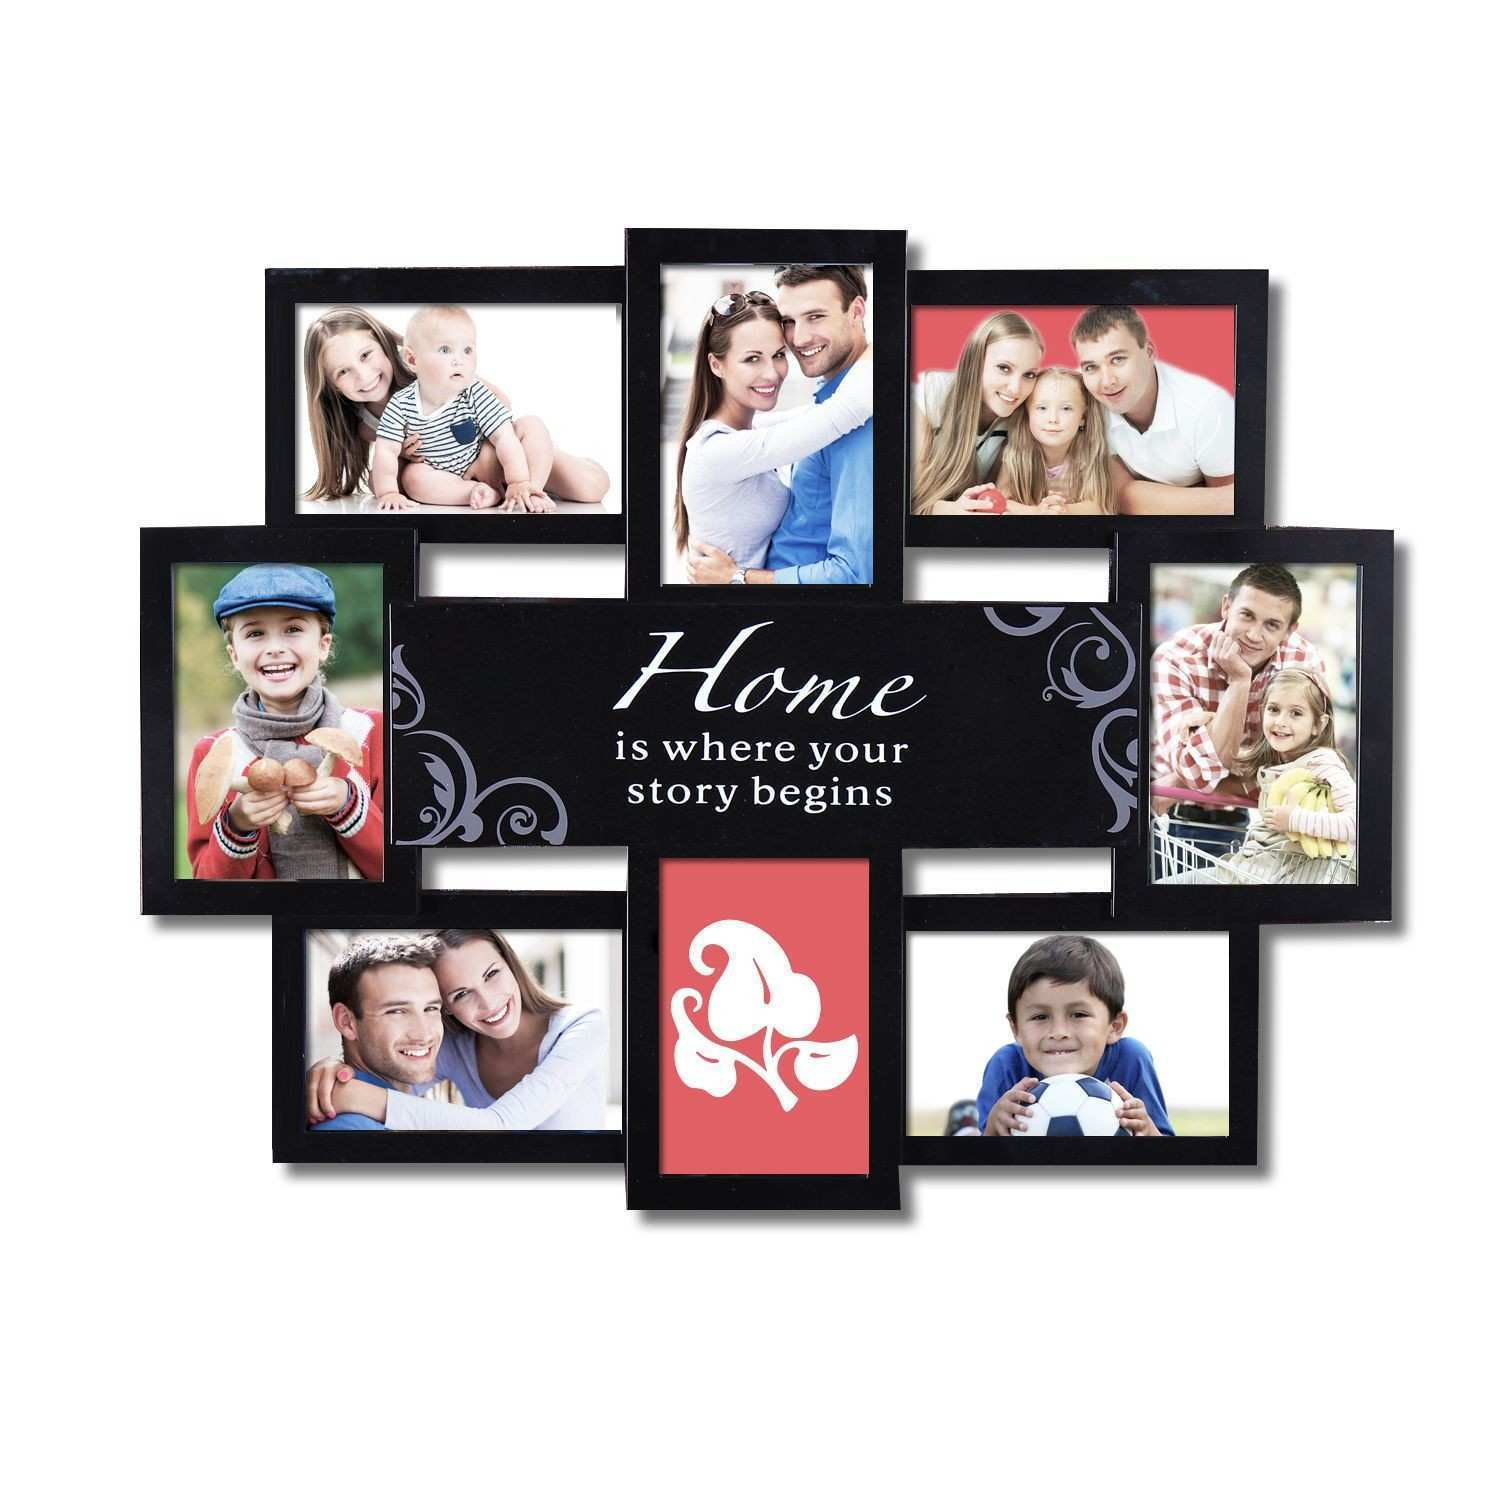 """Adeco Decorative Black Plastic """"Home"""" Wall Hanging Collage Picture"""